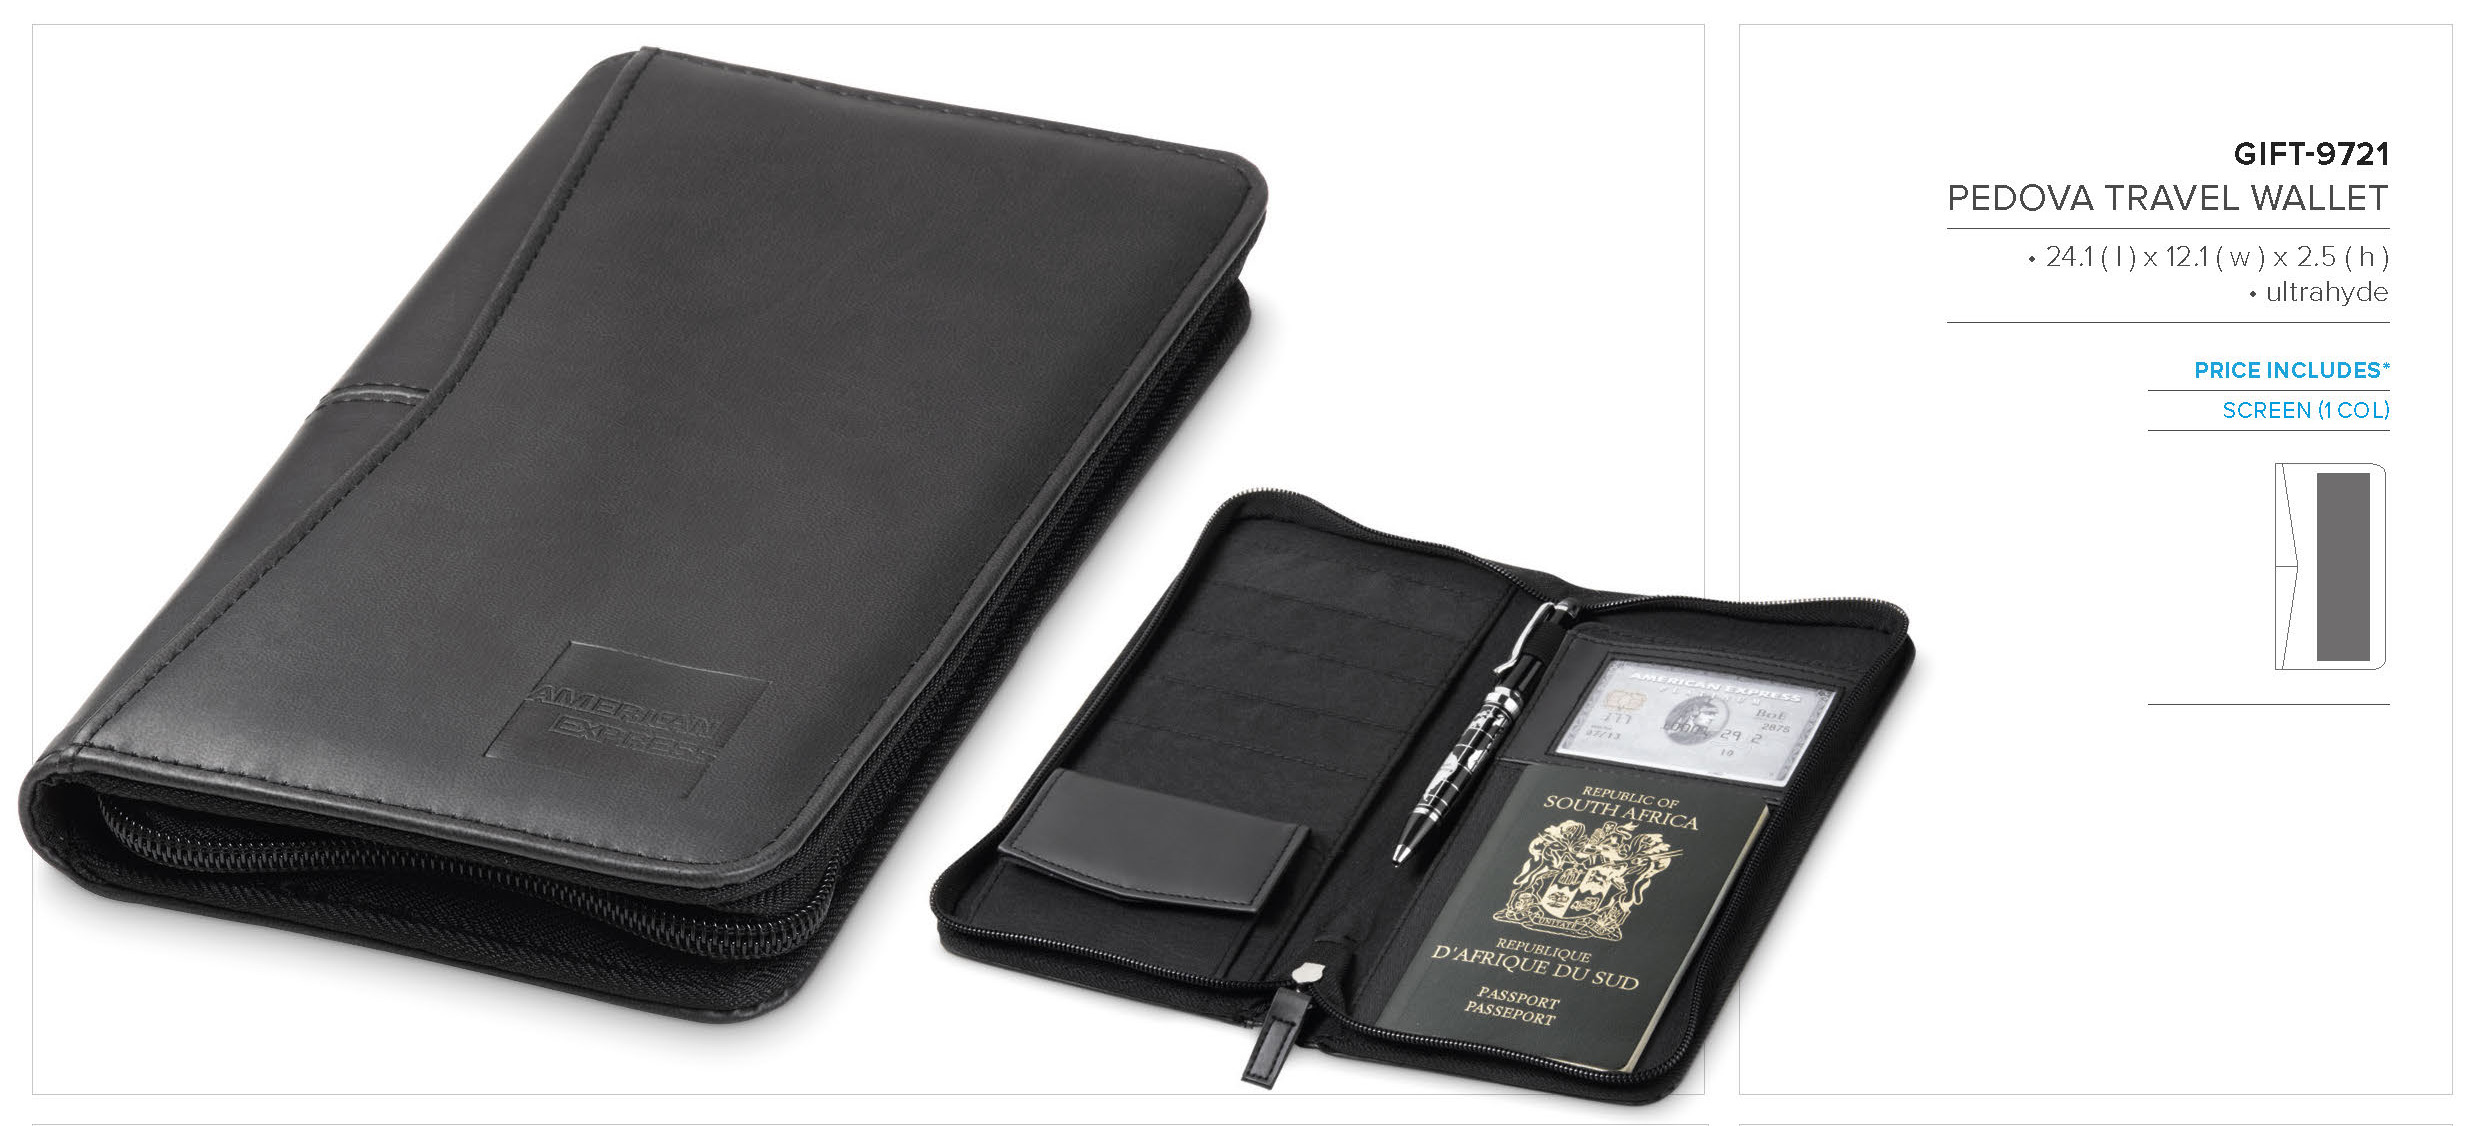 Pedova Travel Wallet GIFT 9721